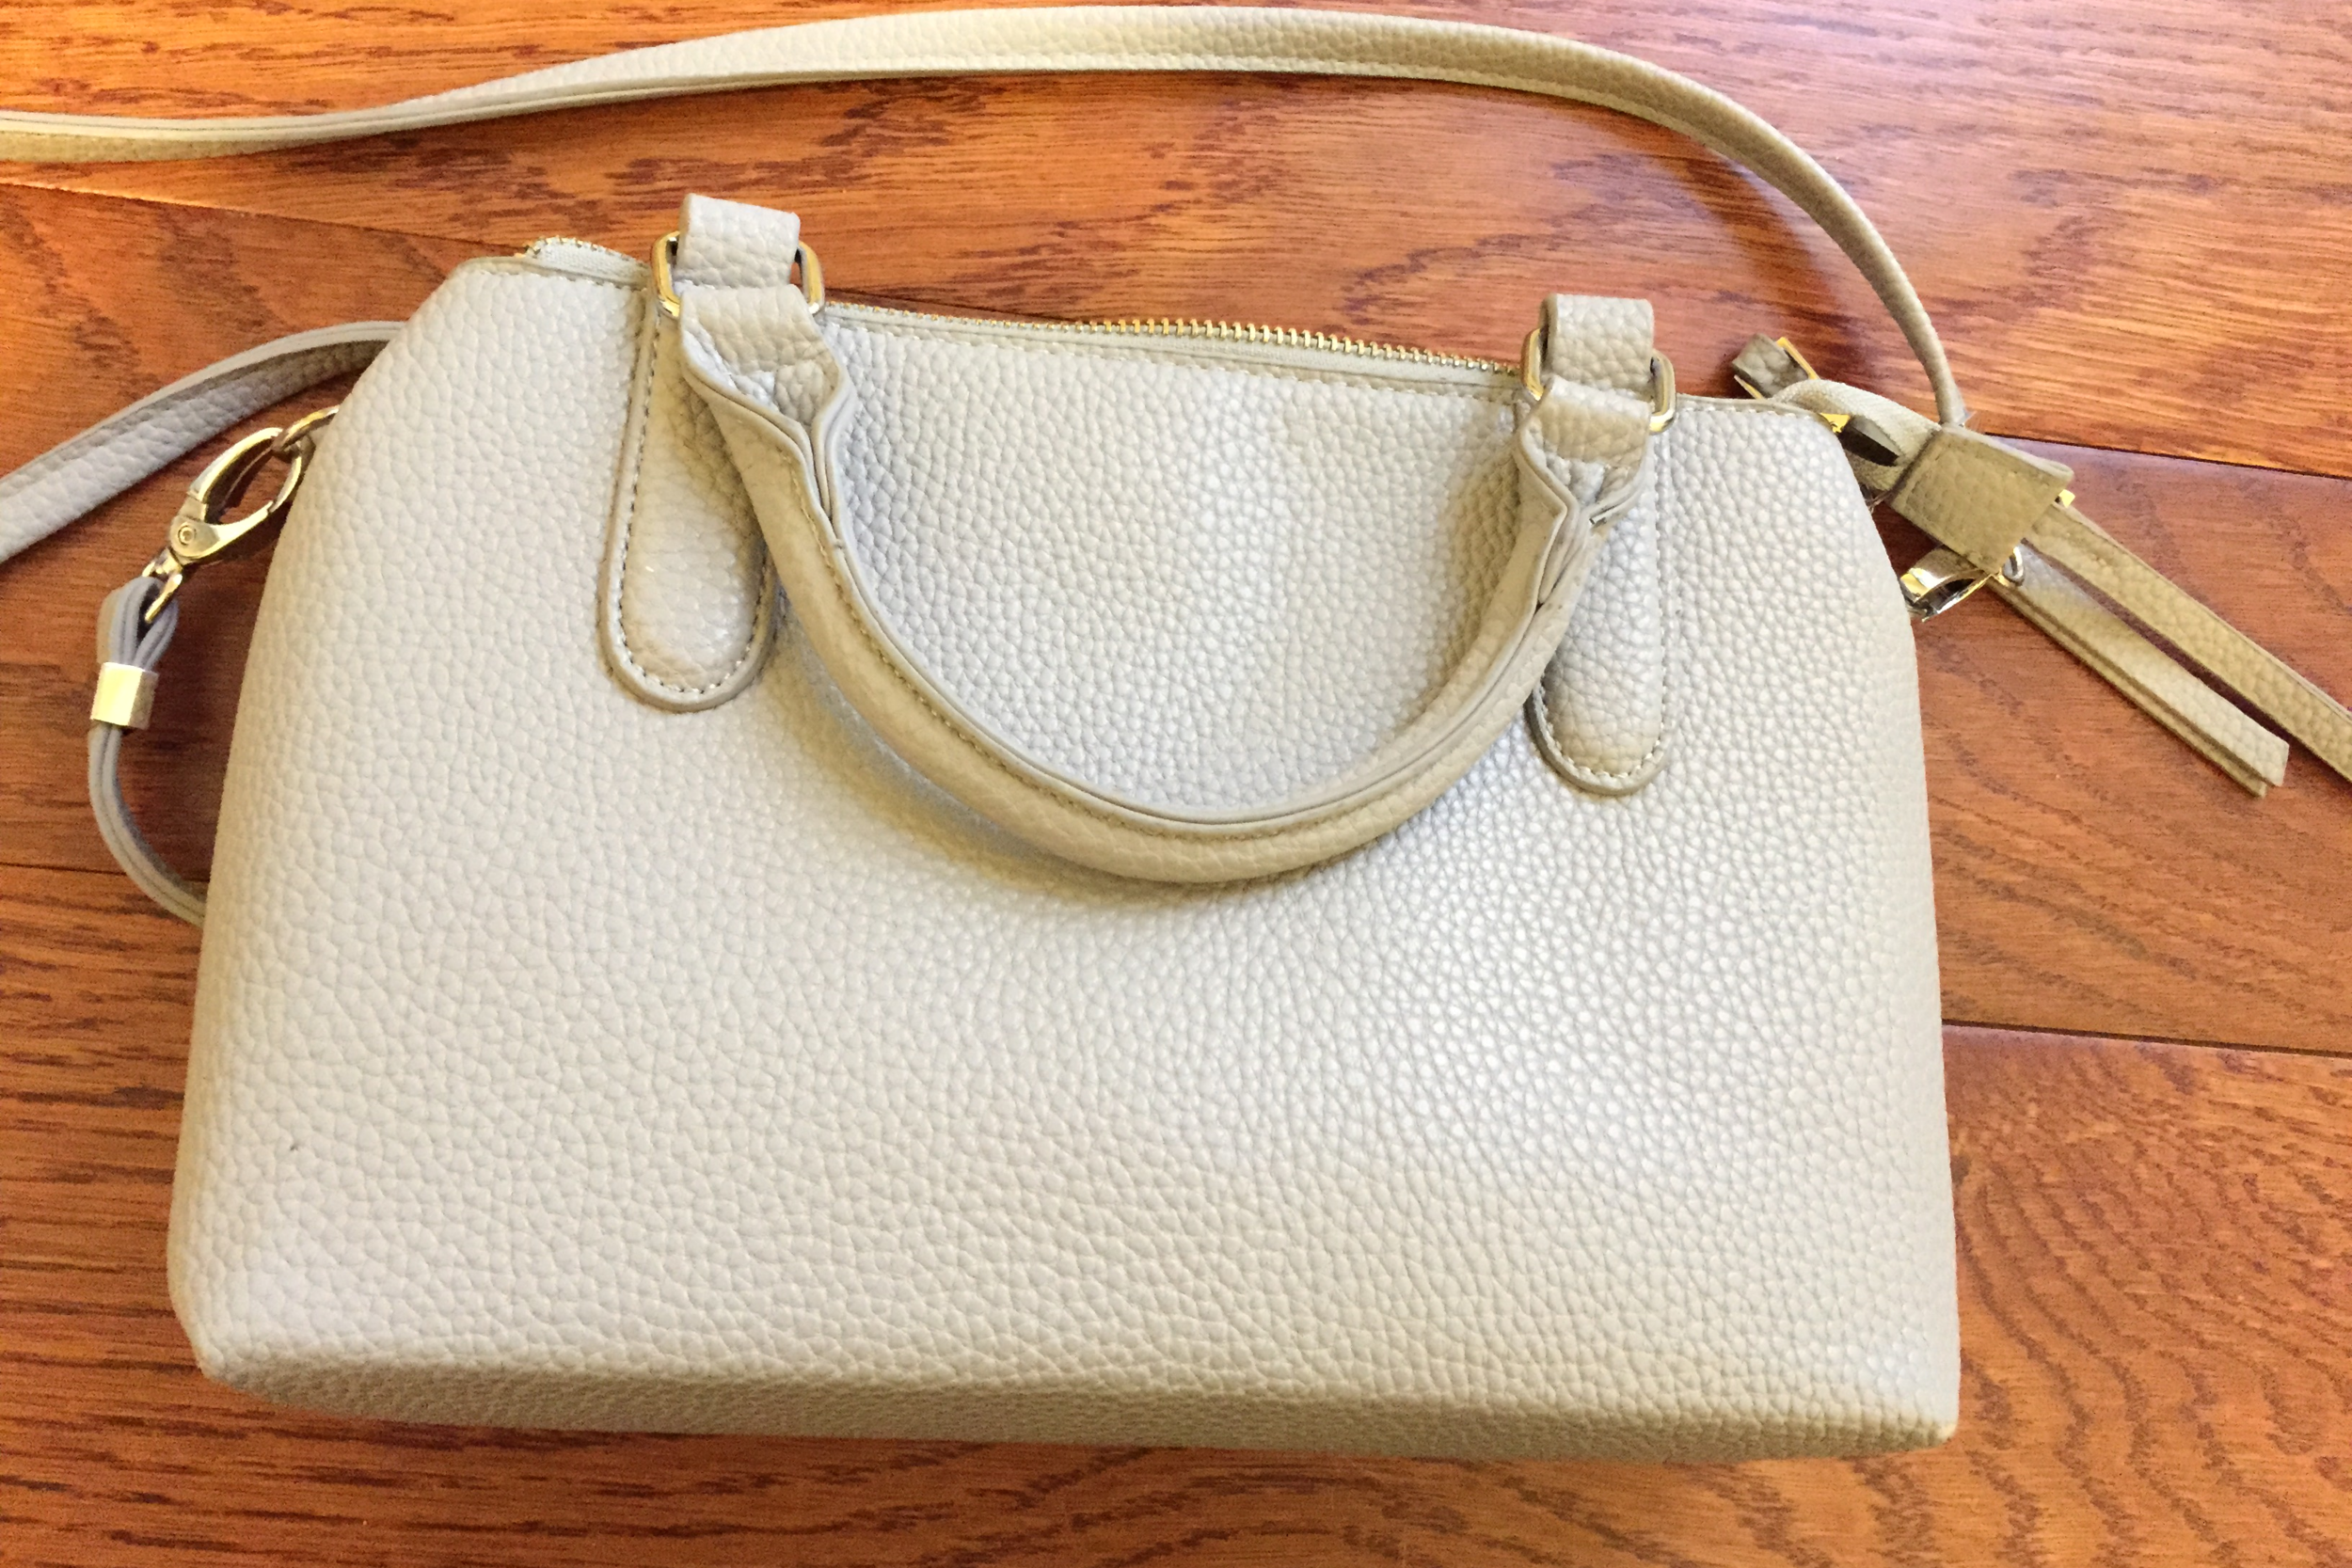 Don't forget your everyday purse!